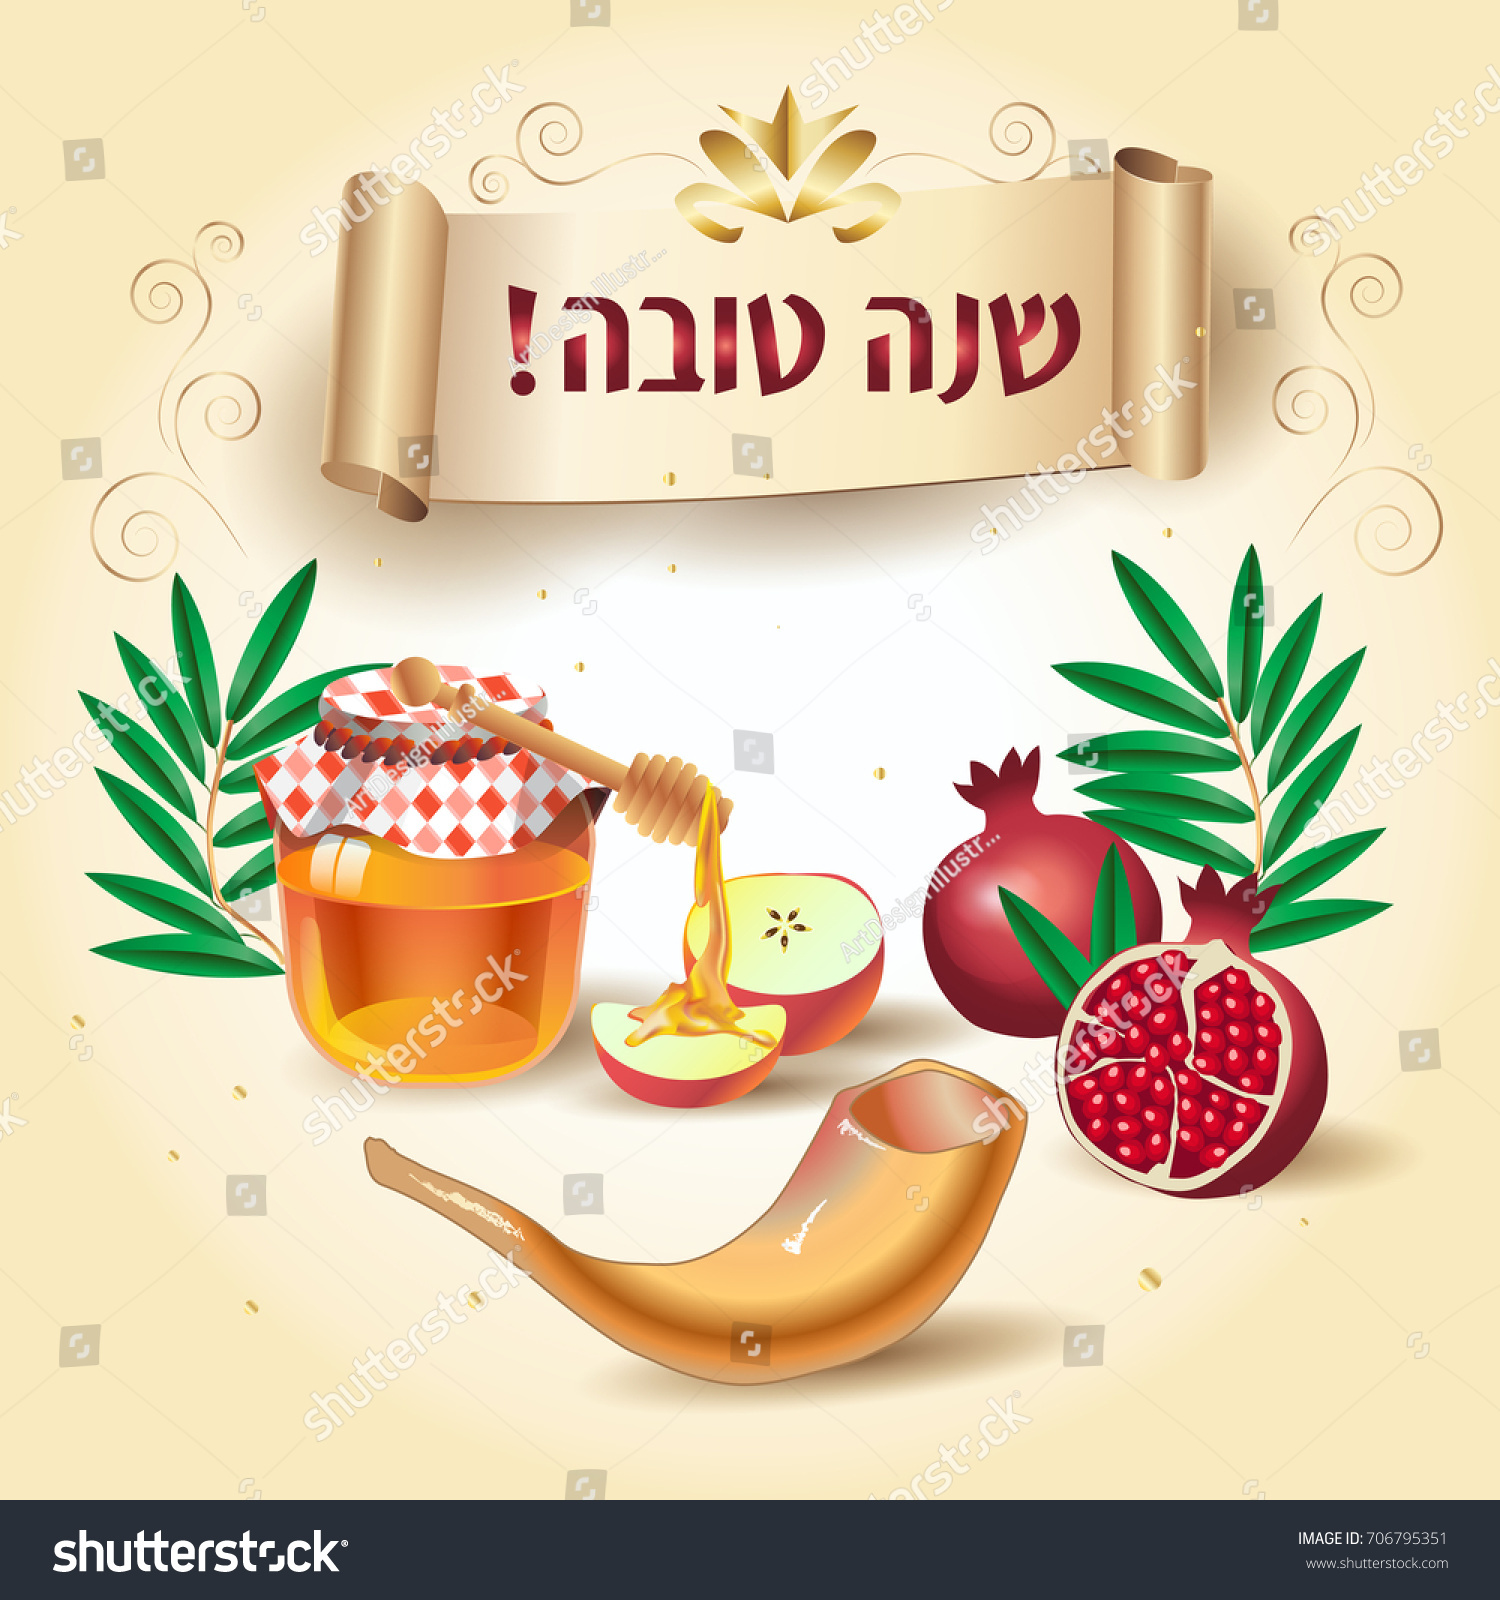 Happy new year rosh hashanah greeting stock vector 706795351 rosh hashanah greeting card jewish new year text shana kristyandbryce Choice Image